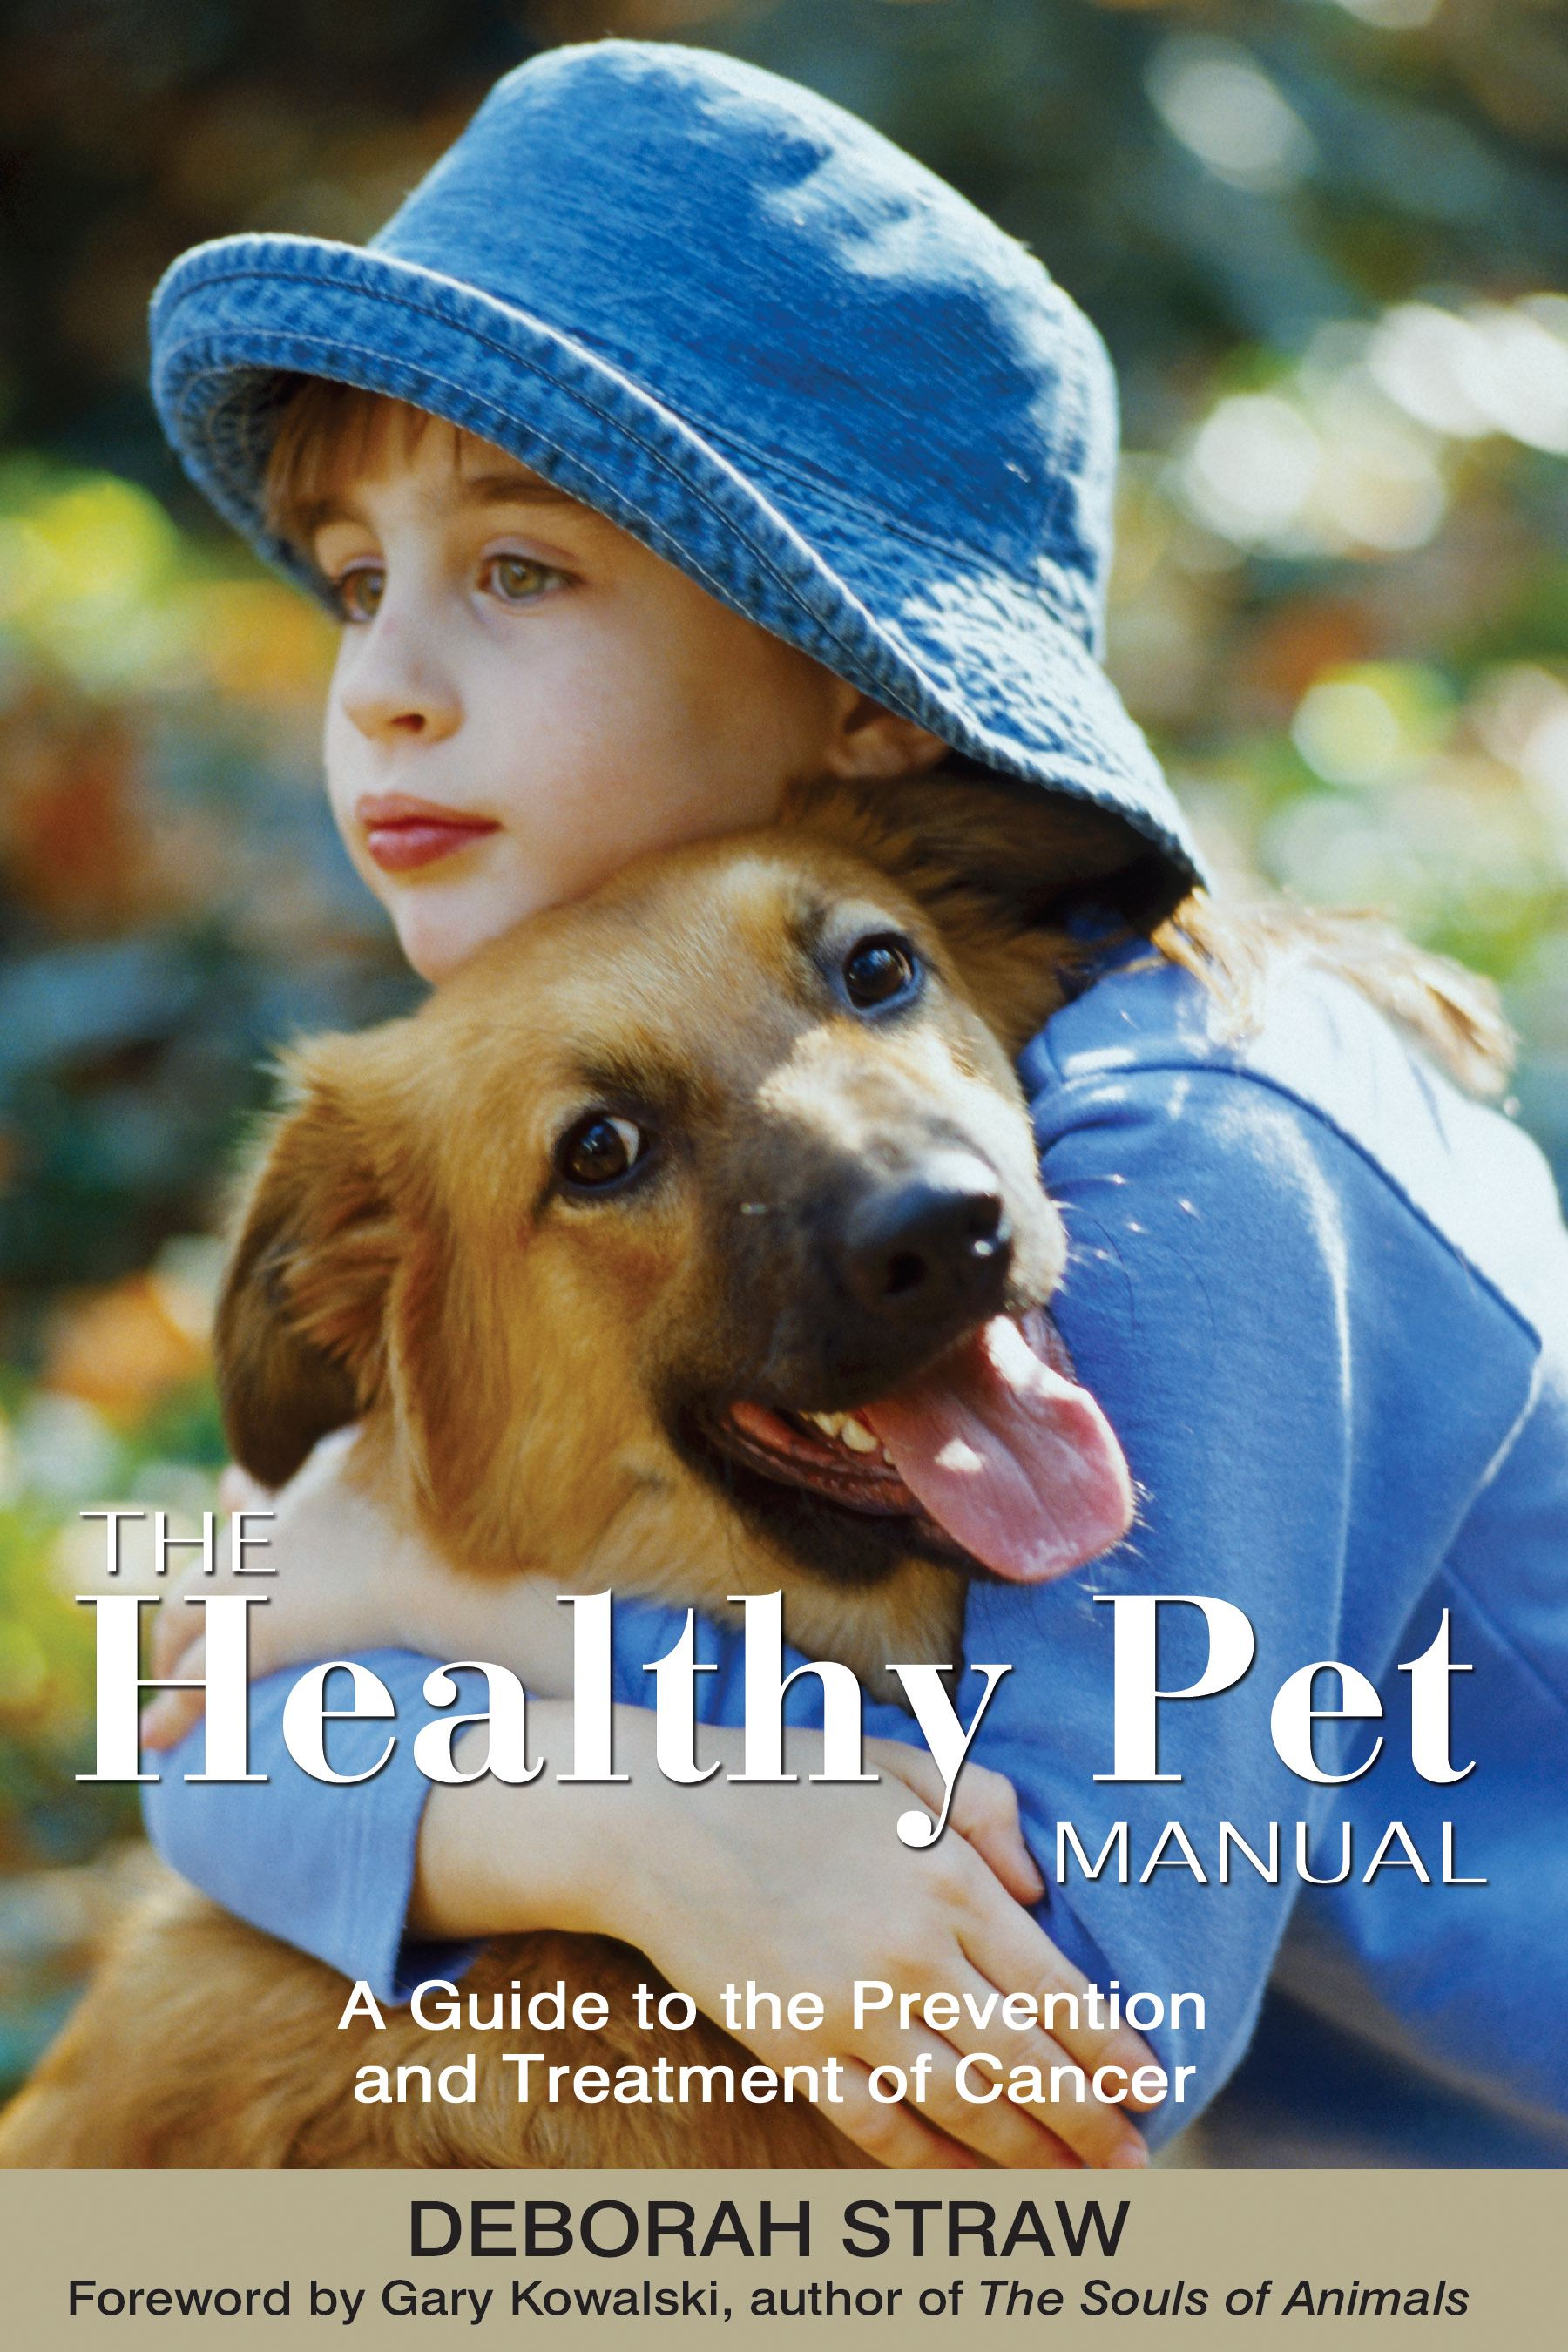 The healthy pet manual 9781594770579 hr